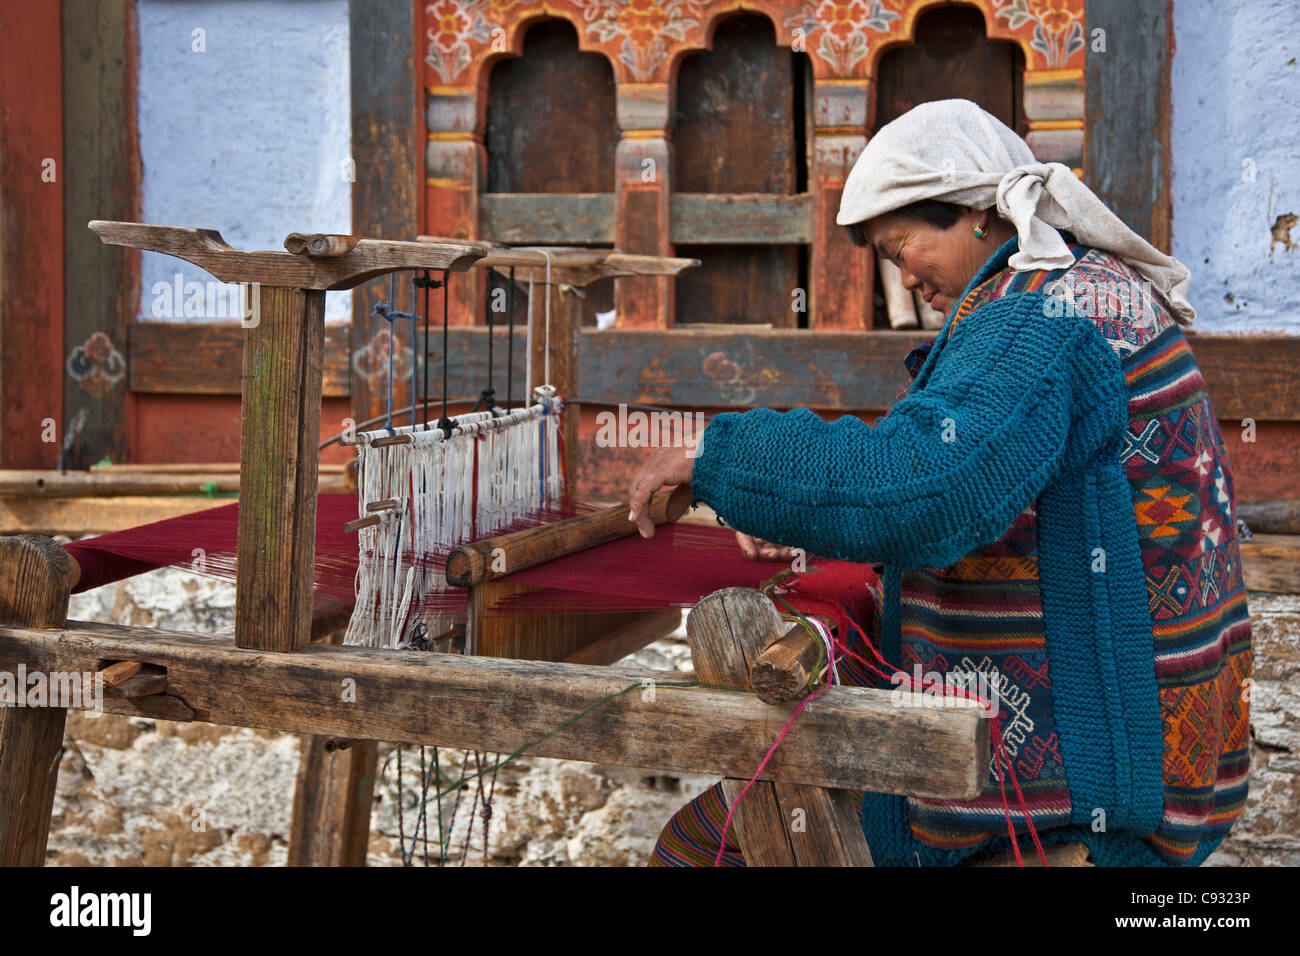 A woman weaving cloth outside her house on the outskirts of Zugney village which is renown for its weaving. - Stock Image